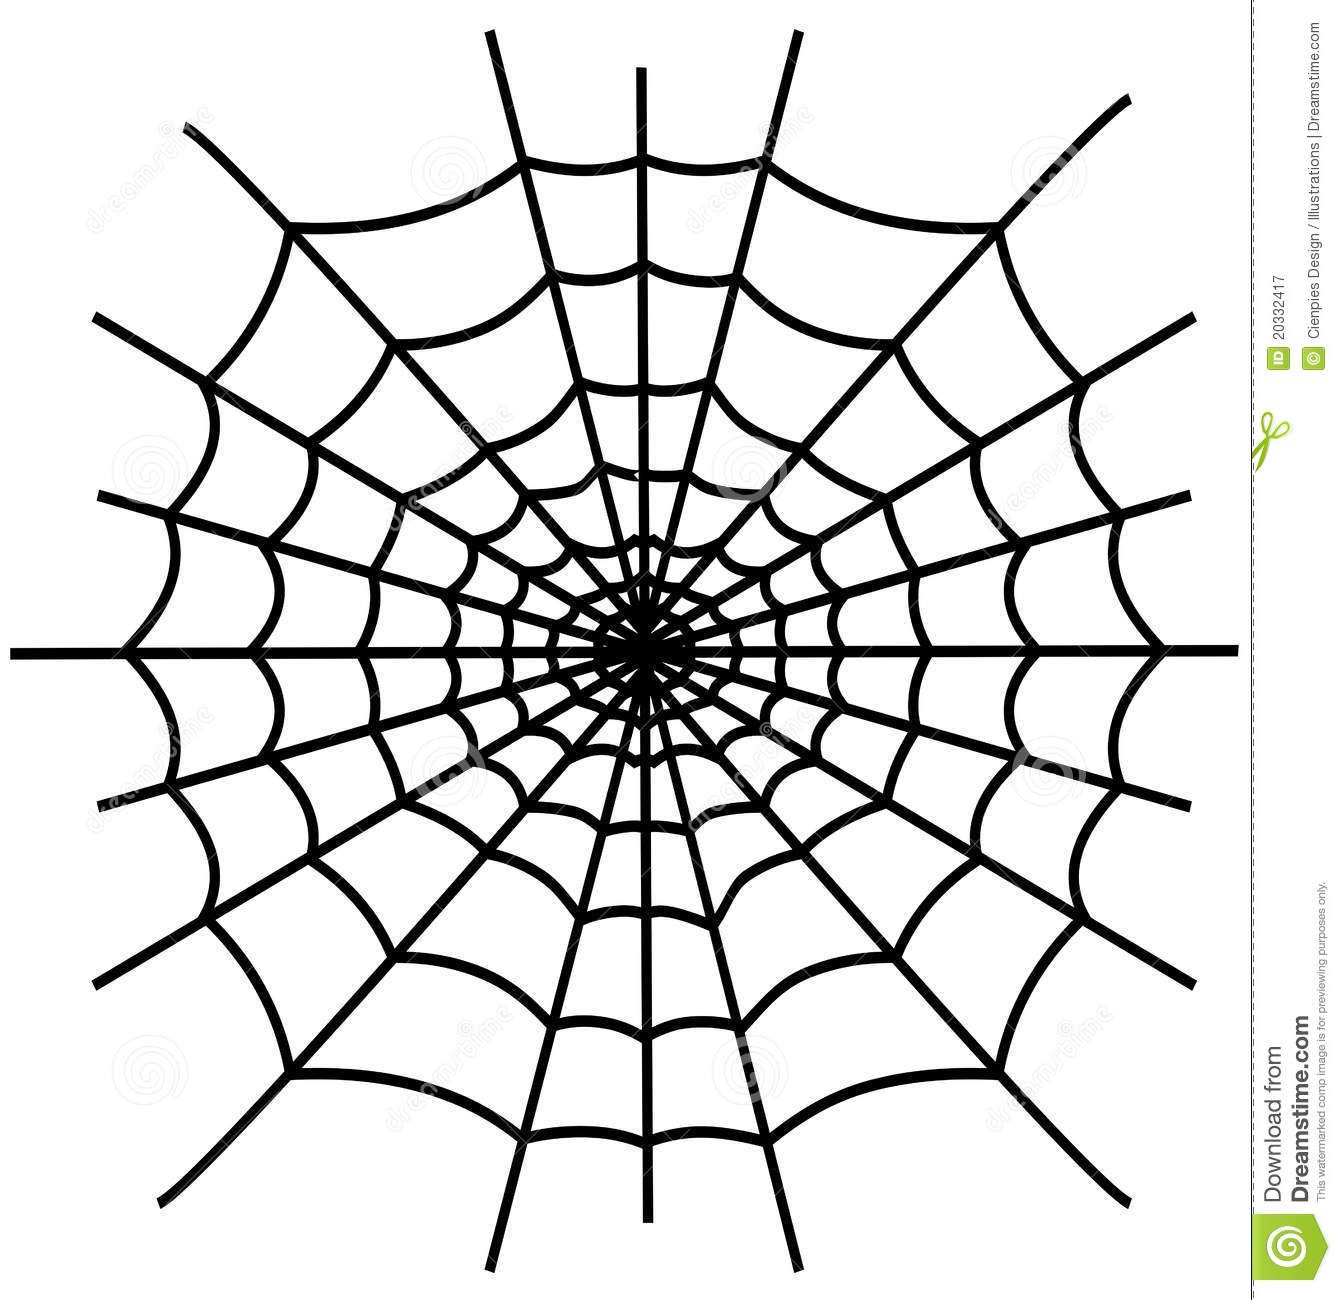 black spiderweb isolated stock vector illustration of cobweb 20332417. Black Bedroom Furniture Sets. Home Design Ideas